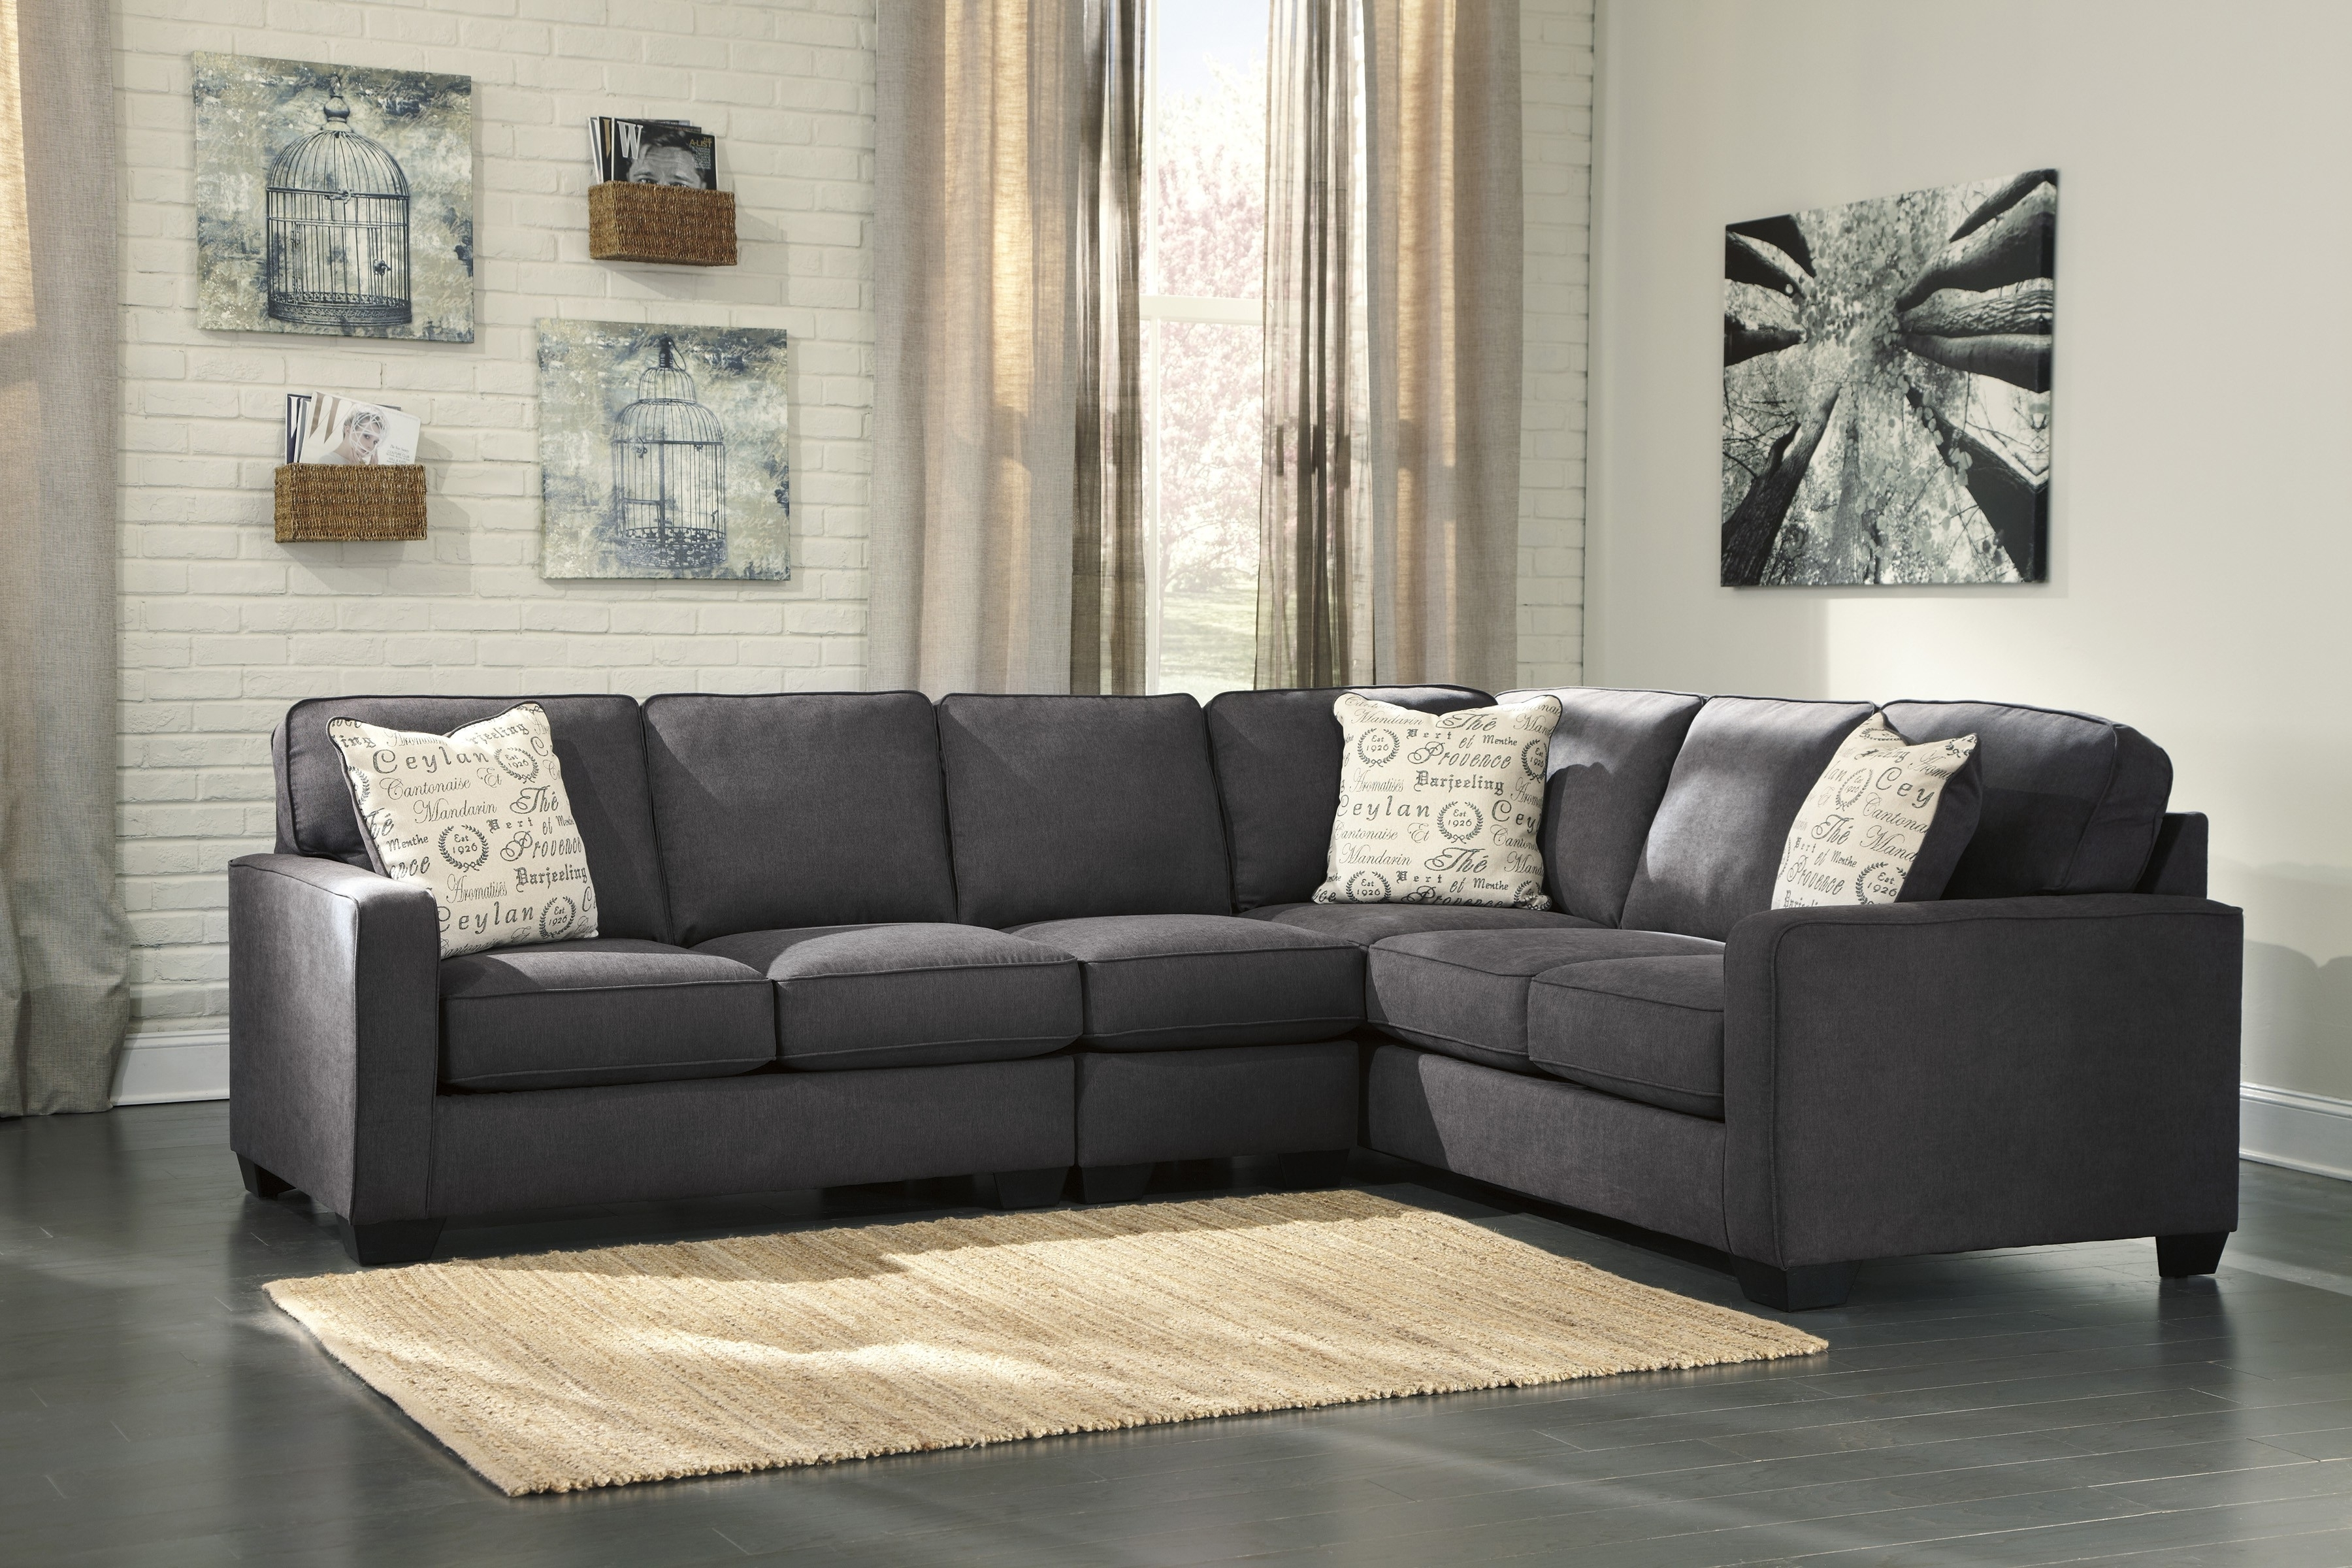 2019 Alenya Charcoal 3 Piece Sectional Sofa For $ (View 1 of 20)